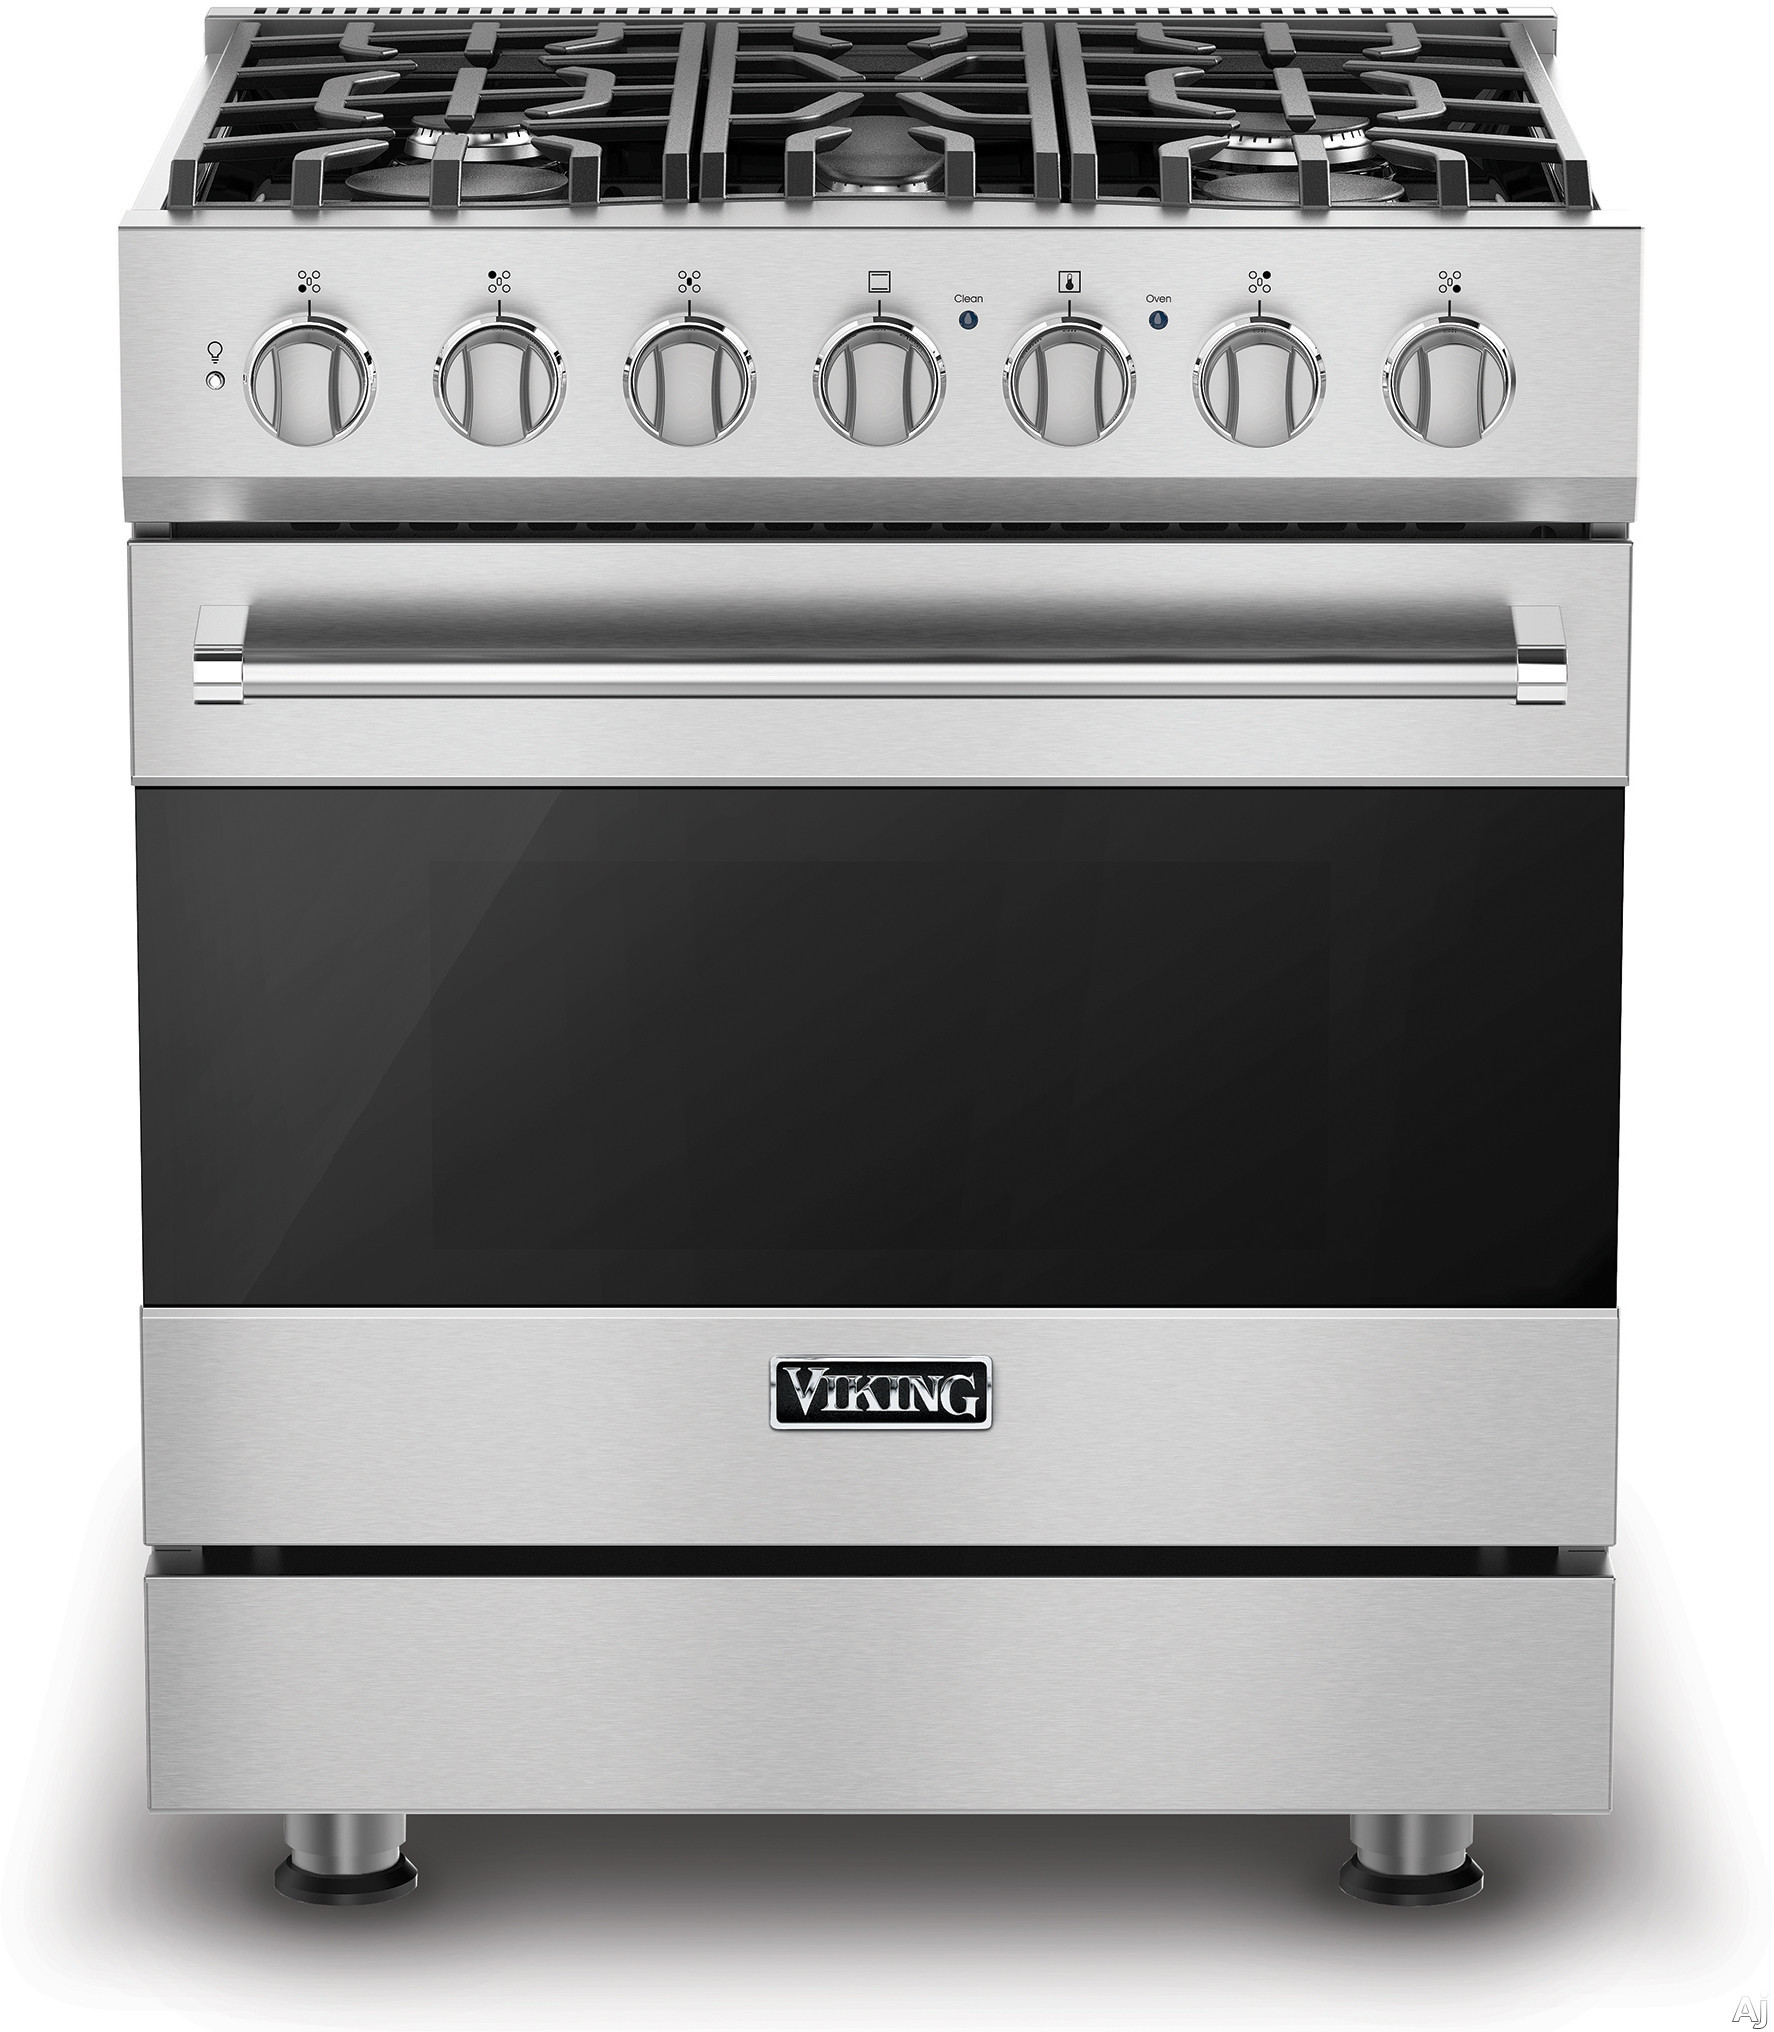 Viking 3 Series RVGR33015B 30 Inch Freestanding Gas Range with 5 Sealed Burners, 18,000 BTU, 4.0 cu. ft. Convection Oven, TruGlide Full-Extension Oven Rack and Self-Clean Cycle